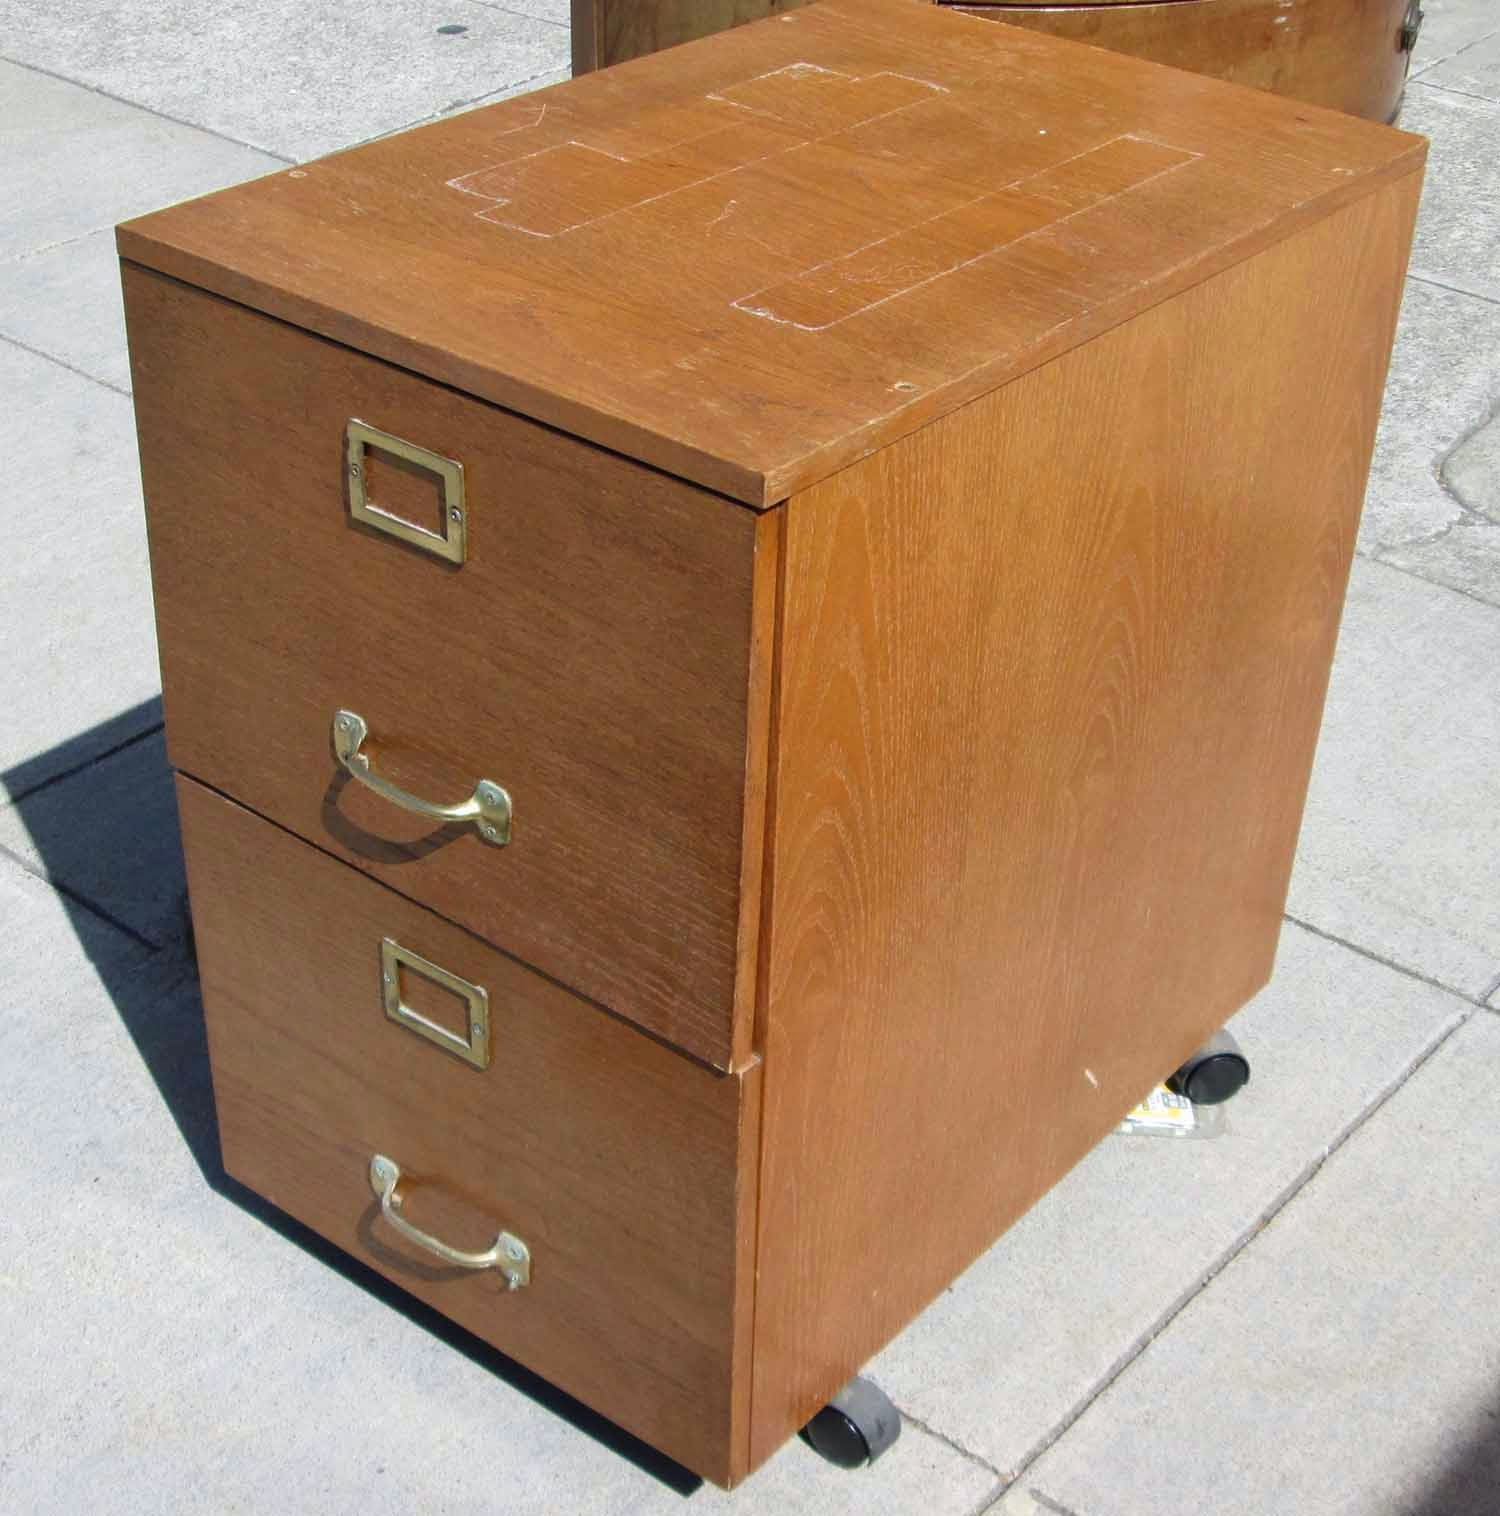 uhuru furniture collectibles sold 2 drawer filing cabinet on wheels 5 as is. Black Bedroom Furniture Sets. Home Design Ideas